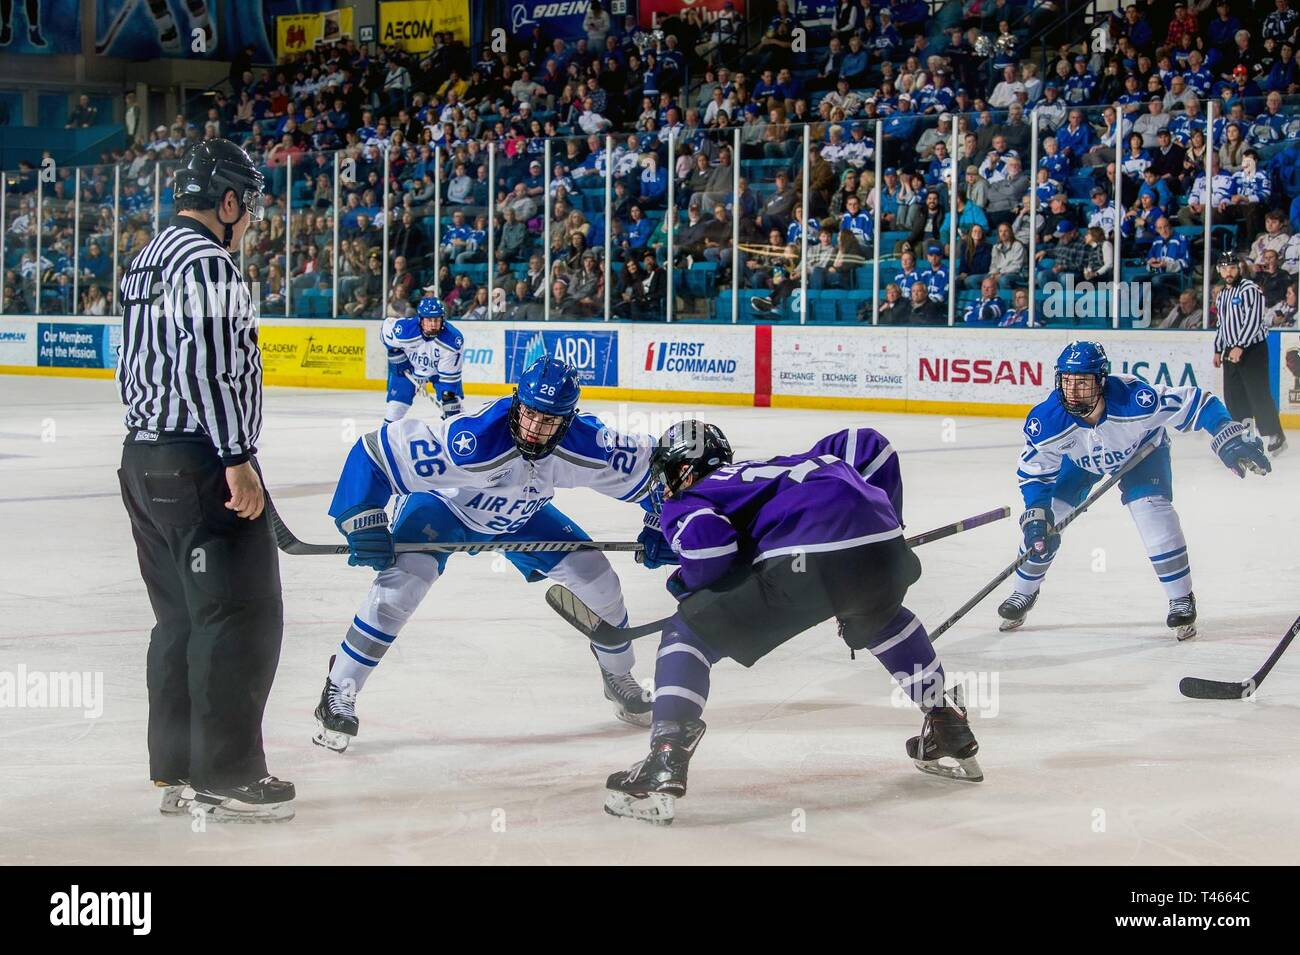 U.S. Air Force Academy – Air Force's Erich Jaeger and Joe Tyran focus on the referee shortly before a faceoff during a game against Holy Cross on March 2, 2019 at the Cadet Ice Arena. Air Force defeated Holy Cross 4-2. - Stock Image